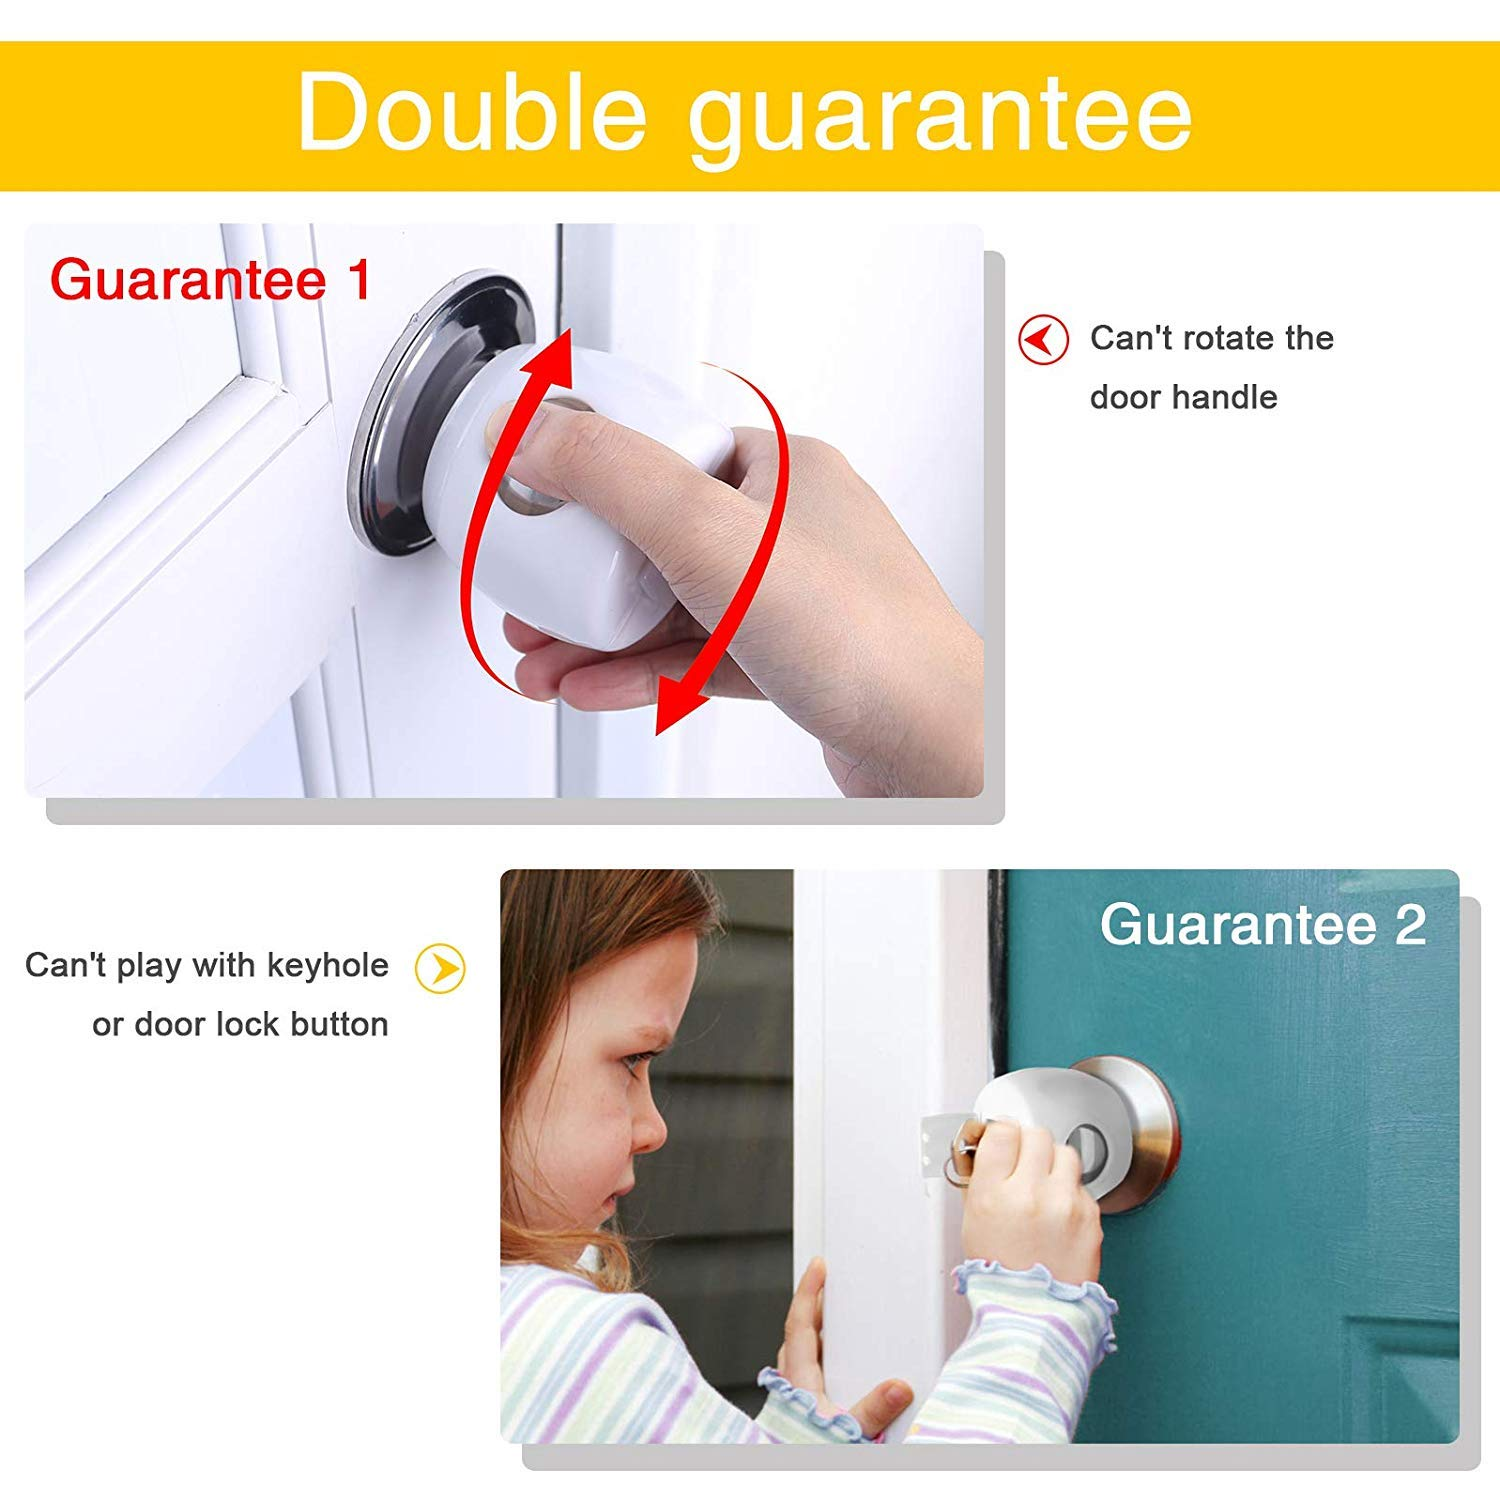 BYETOO 3 Pcs Baby Safety Door Knob Cover,Door Handle Cover Lockable Design,Child Proof Door Knob Covers Universal Size,Protect Your Child from Opening Unsafe Rooms or Locking Themselves in Home